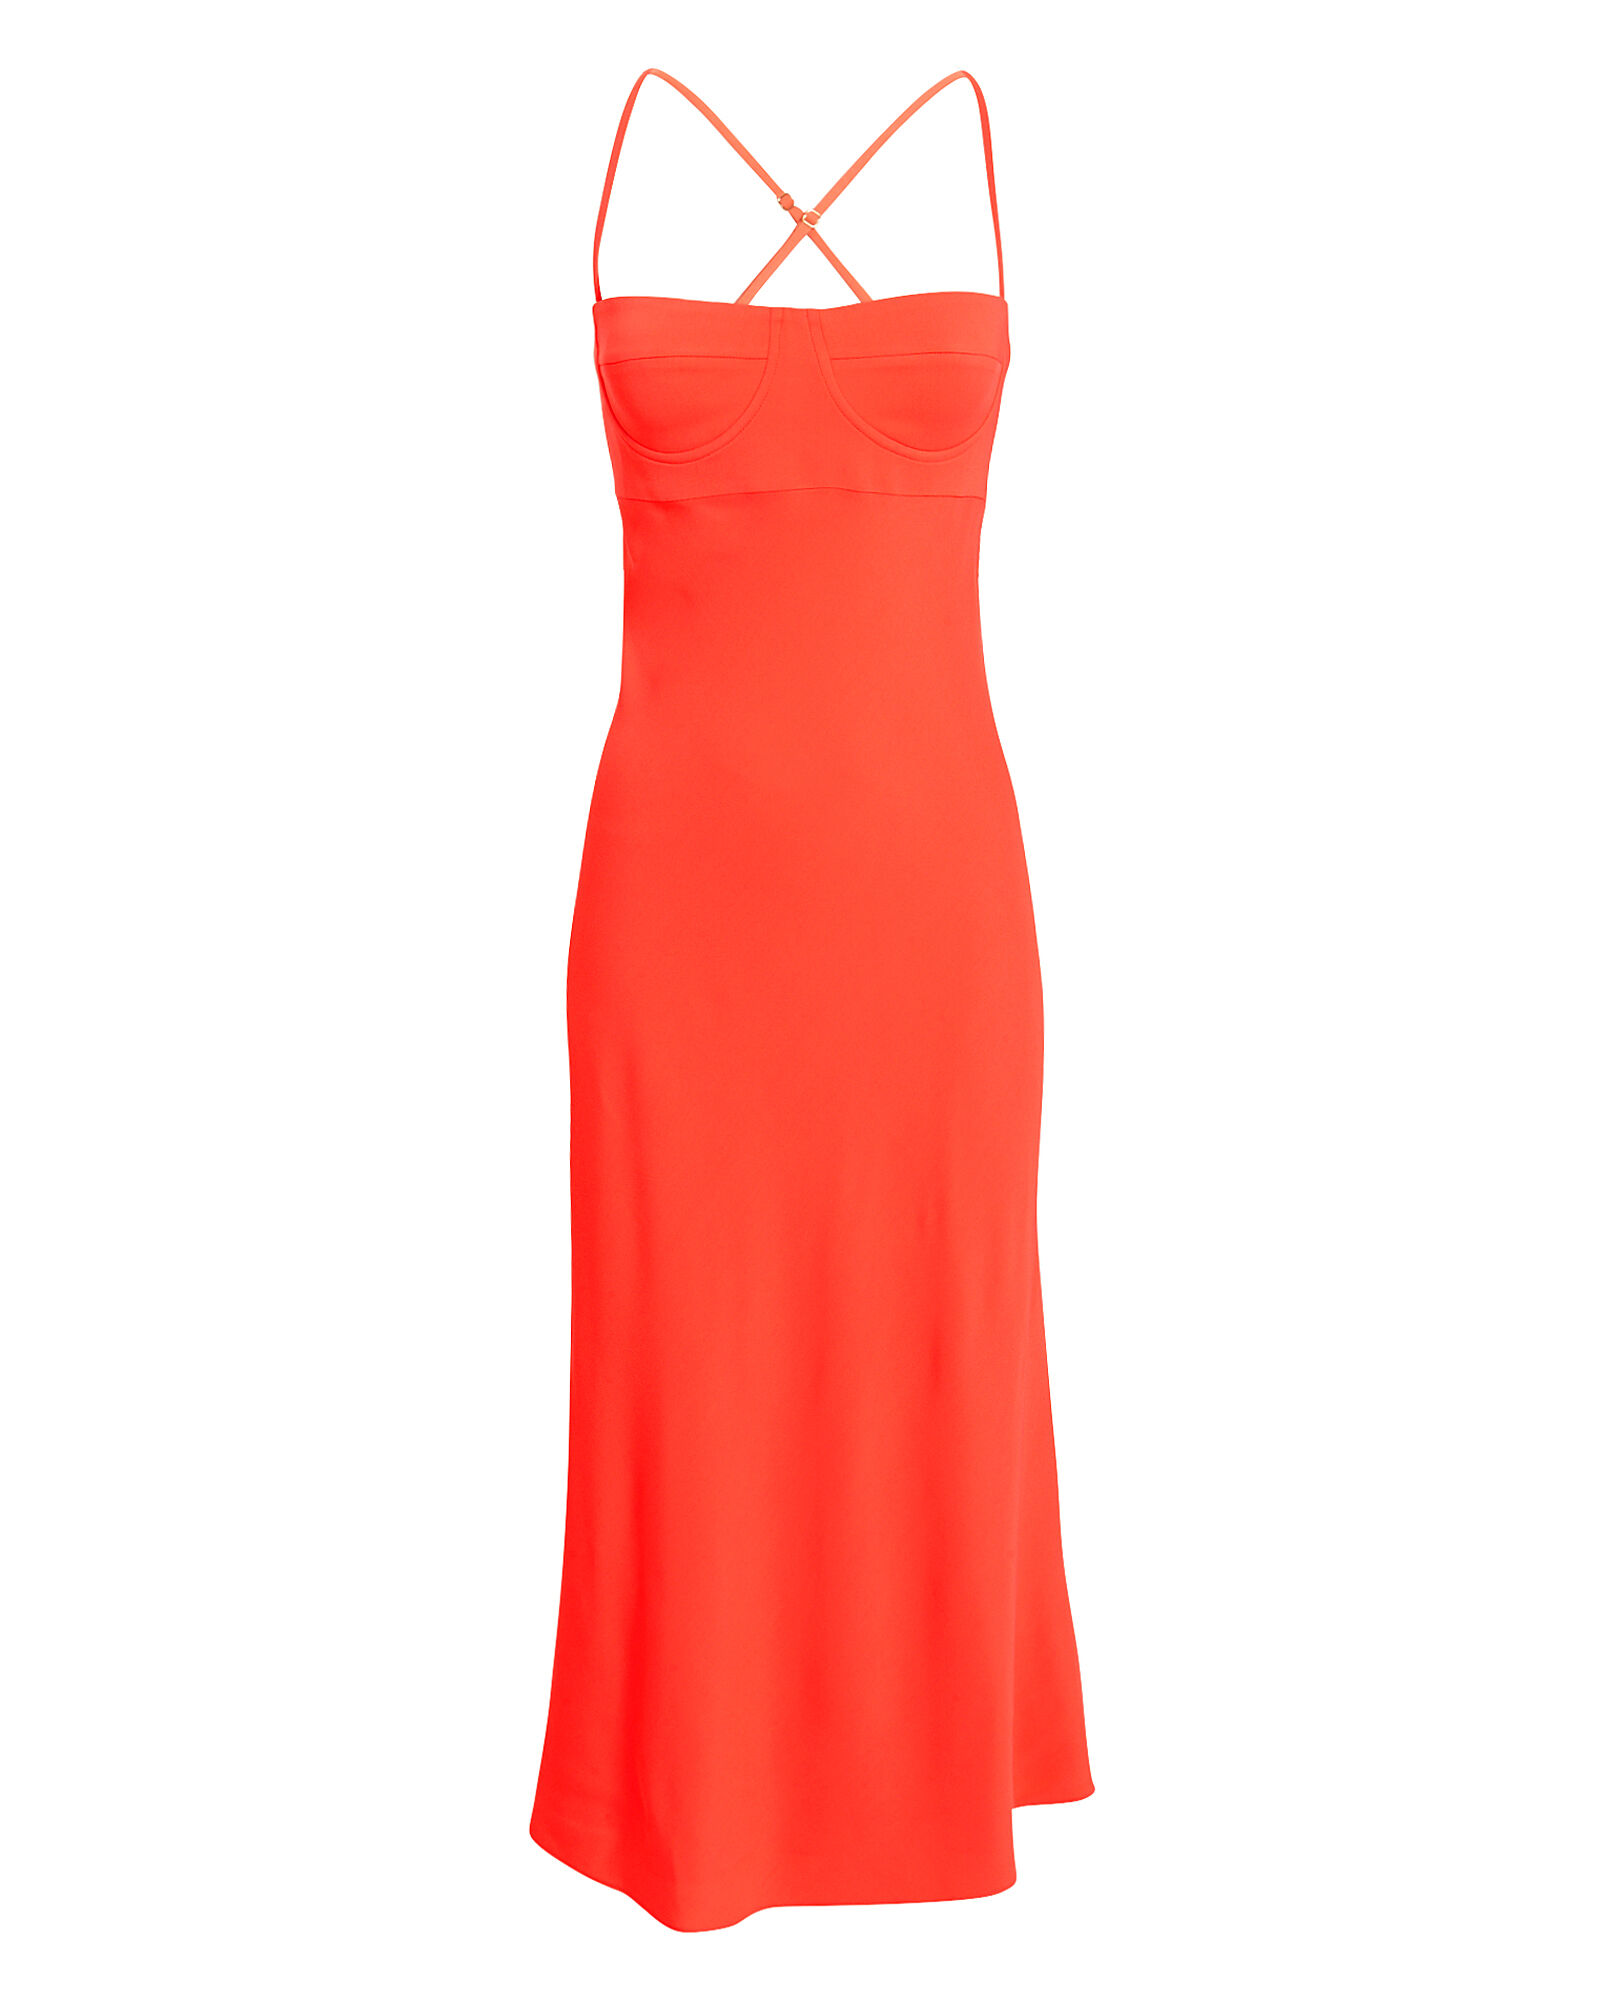 Crepe Bustier Midi Dress, ORANGE, hi-res